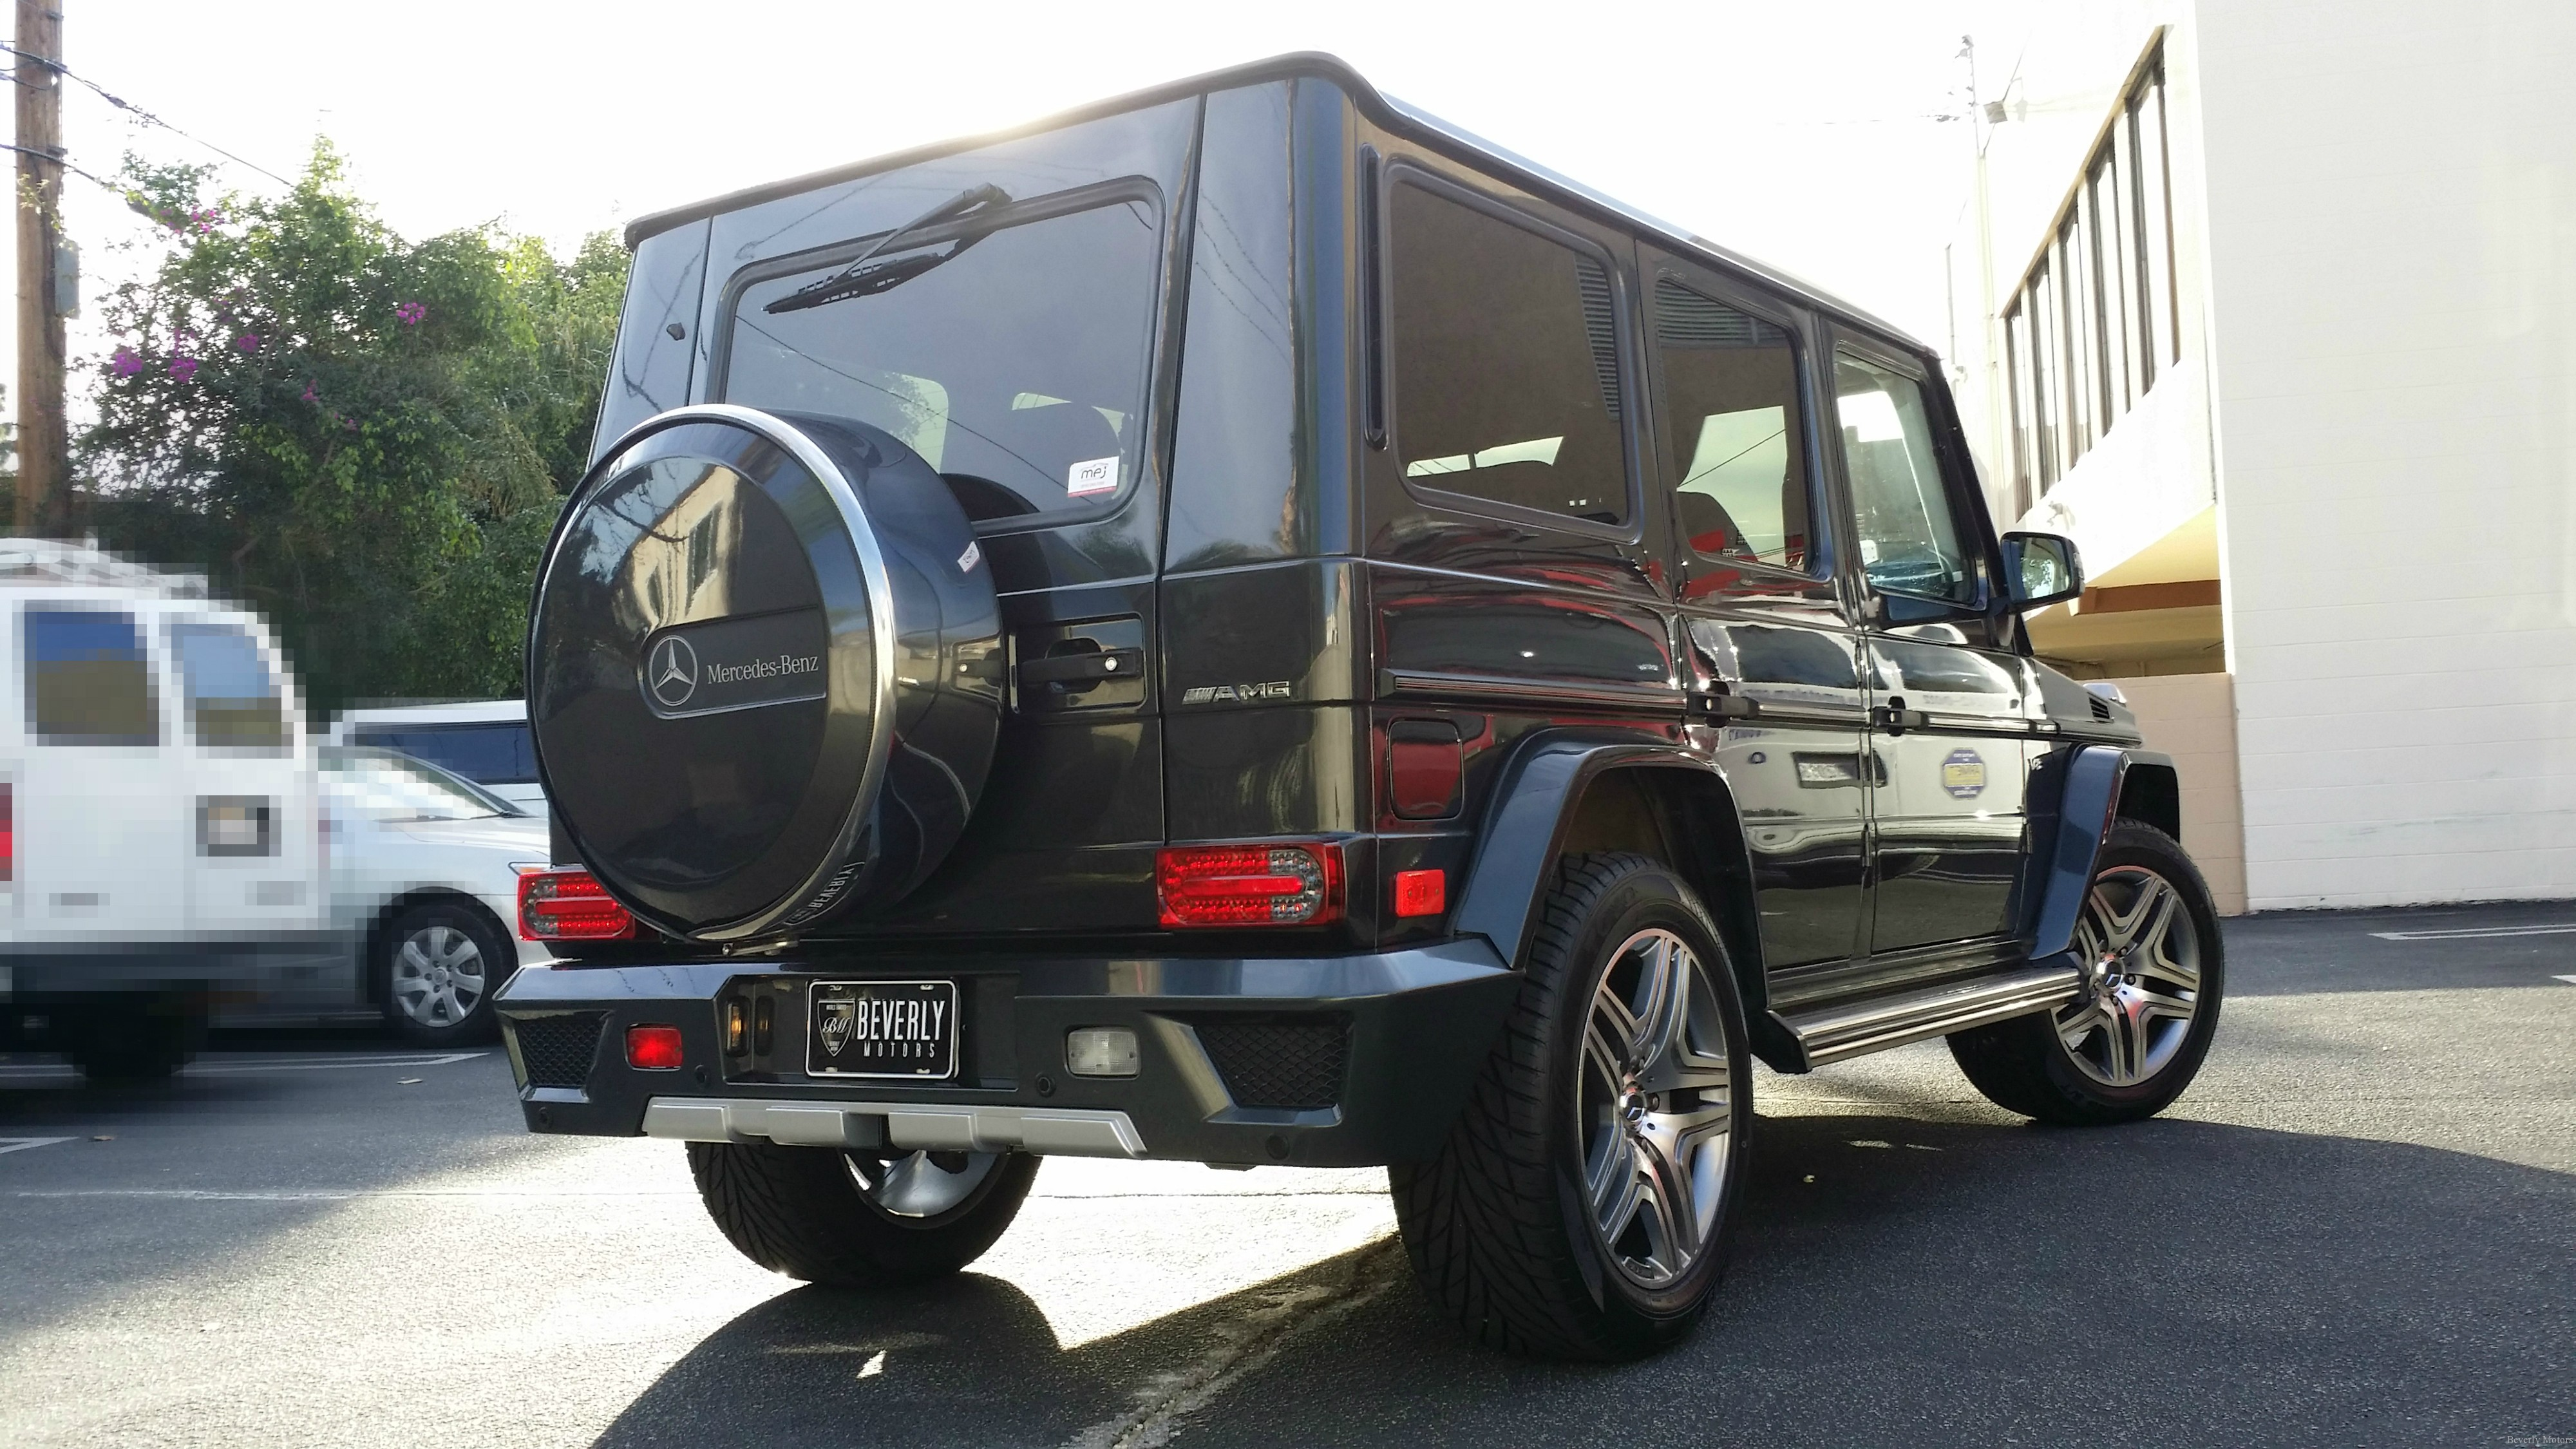 2003 mercedes benz g500 g63 for sale beverly motors inc for 2014 mercedes benz g wagon for sale